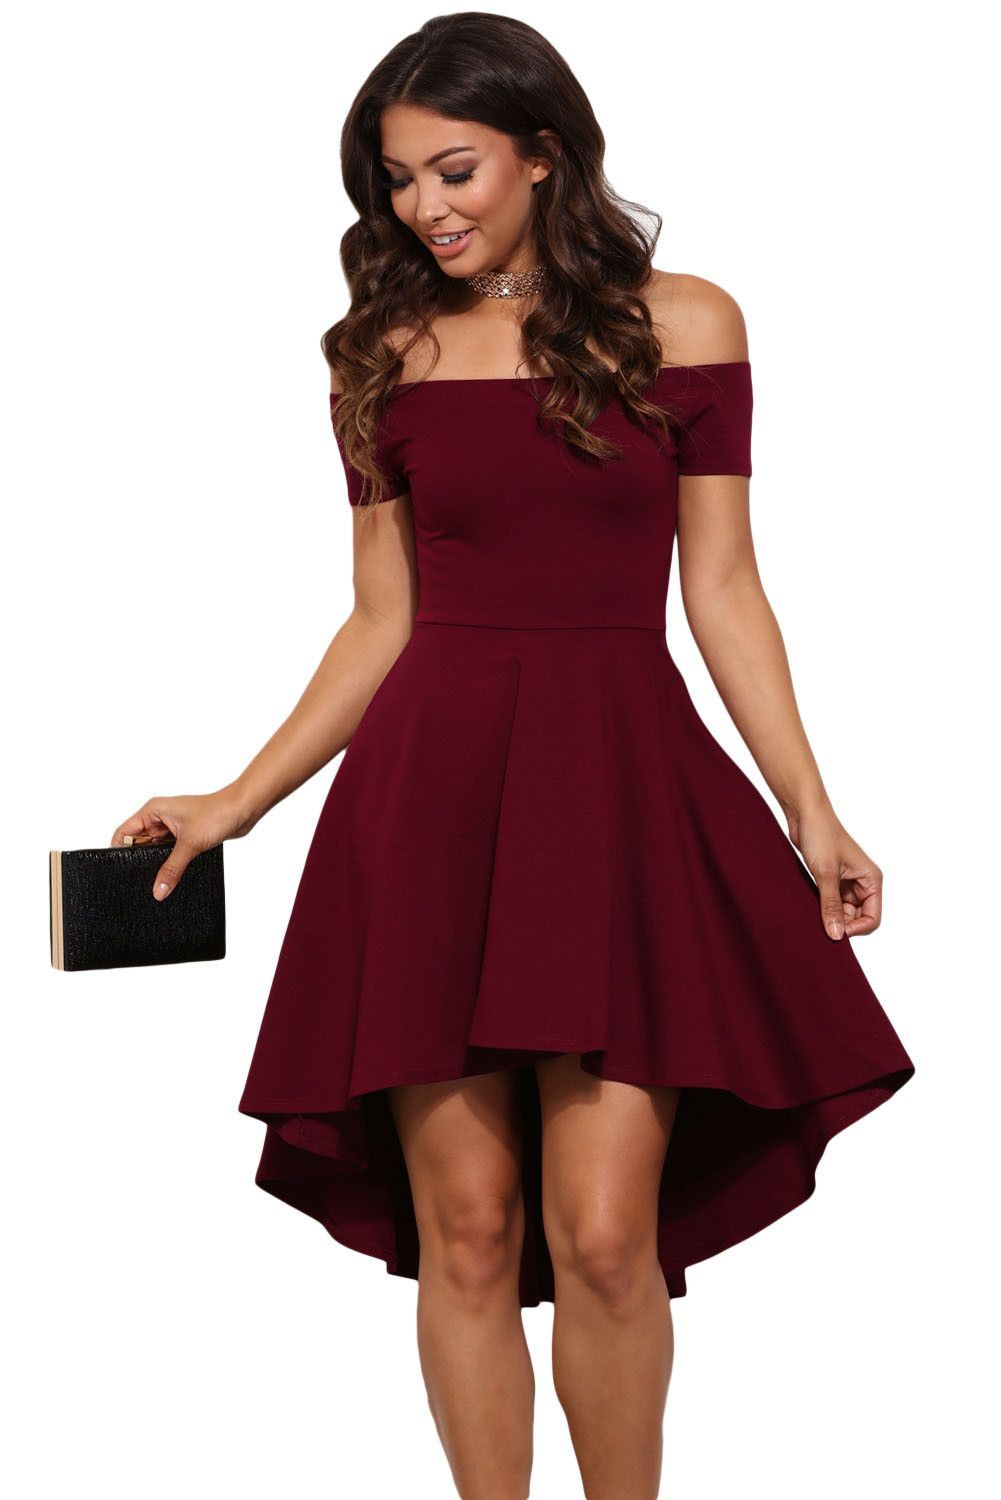 d82cfa778a Burgundy Off Shoulder High Low Cocktail Party Dress